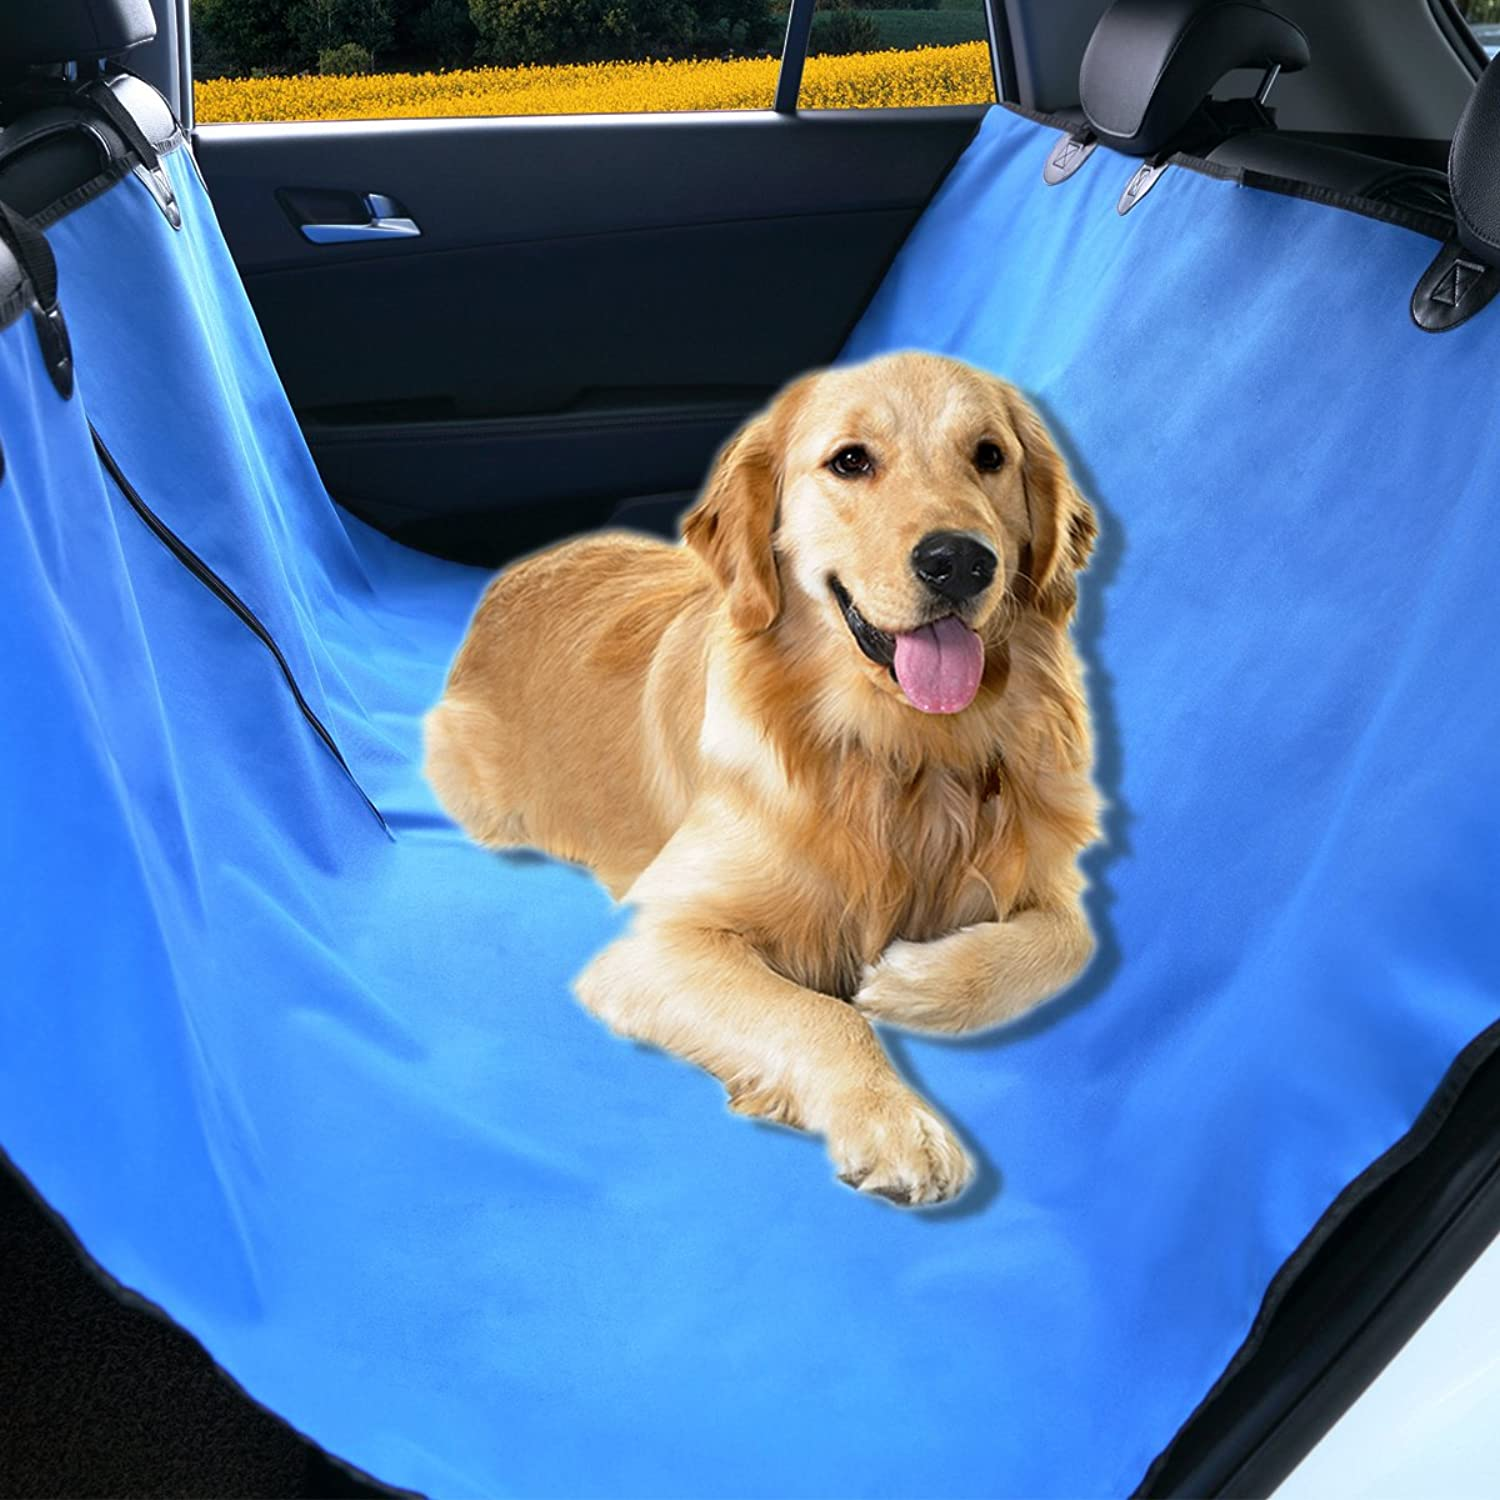 Pet Seat Cover for Car Seats [Upgraded Model] Hammock Style Cover Predects Car Back Seats from Dog Fur, Mud, Scratches by Pet Magasin  New bluee by Pet Magasin